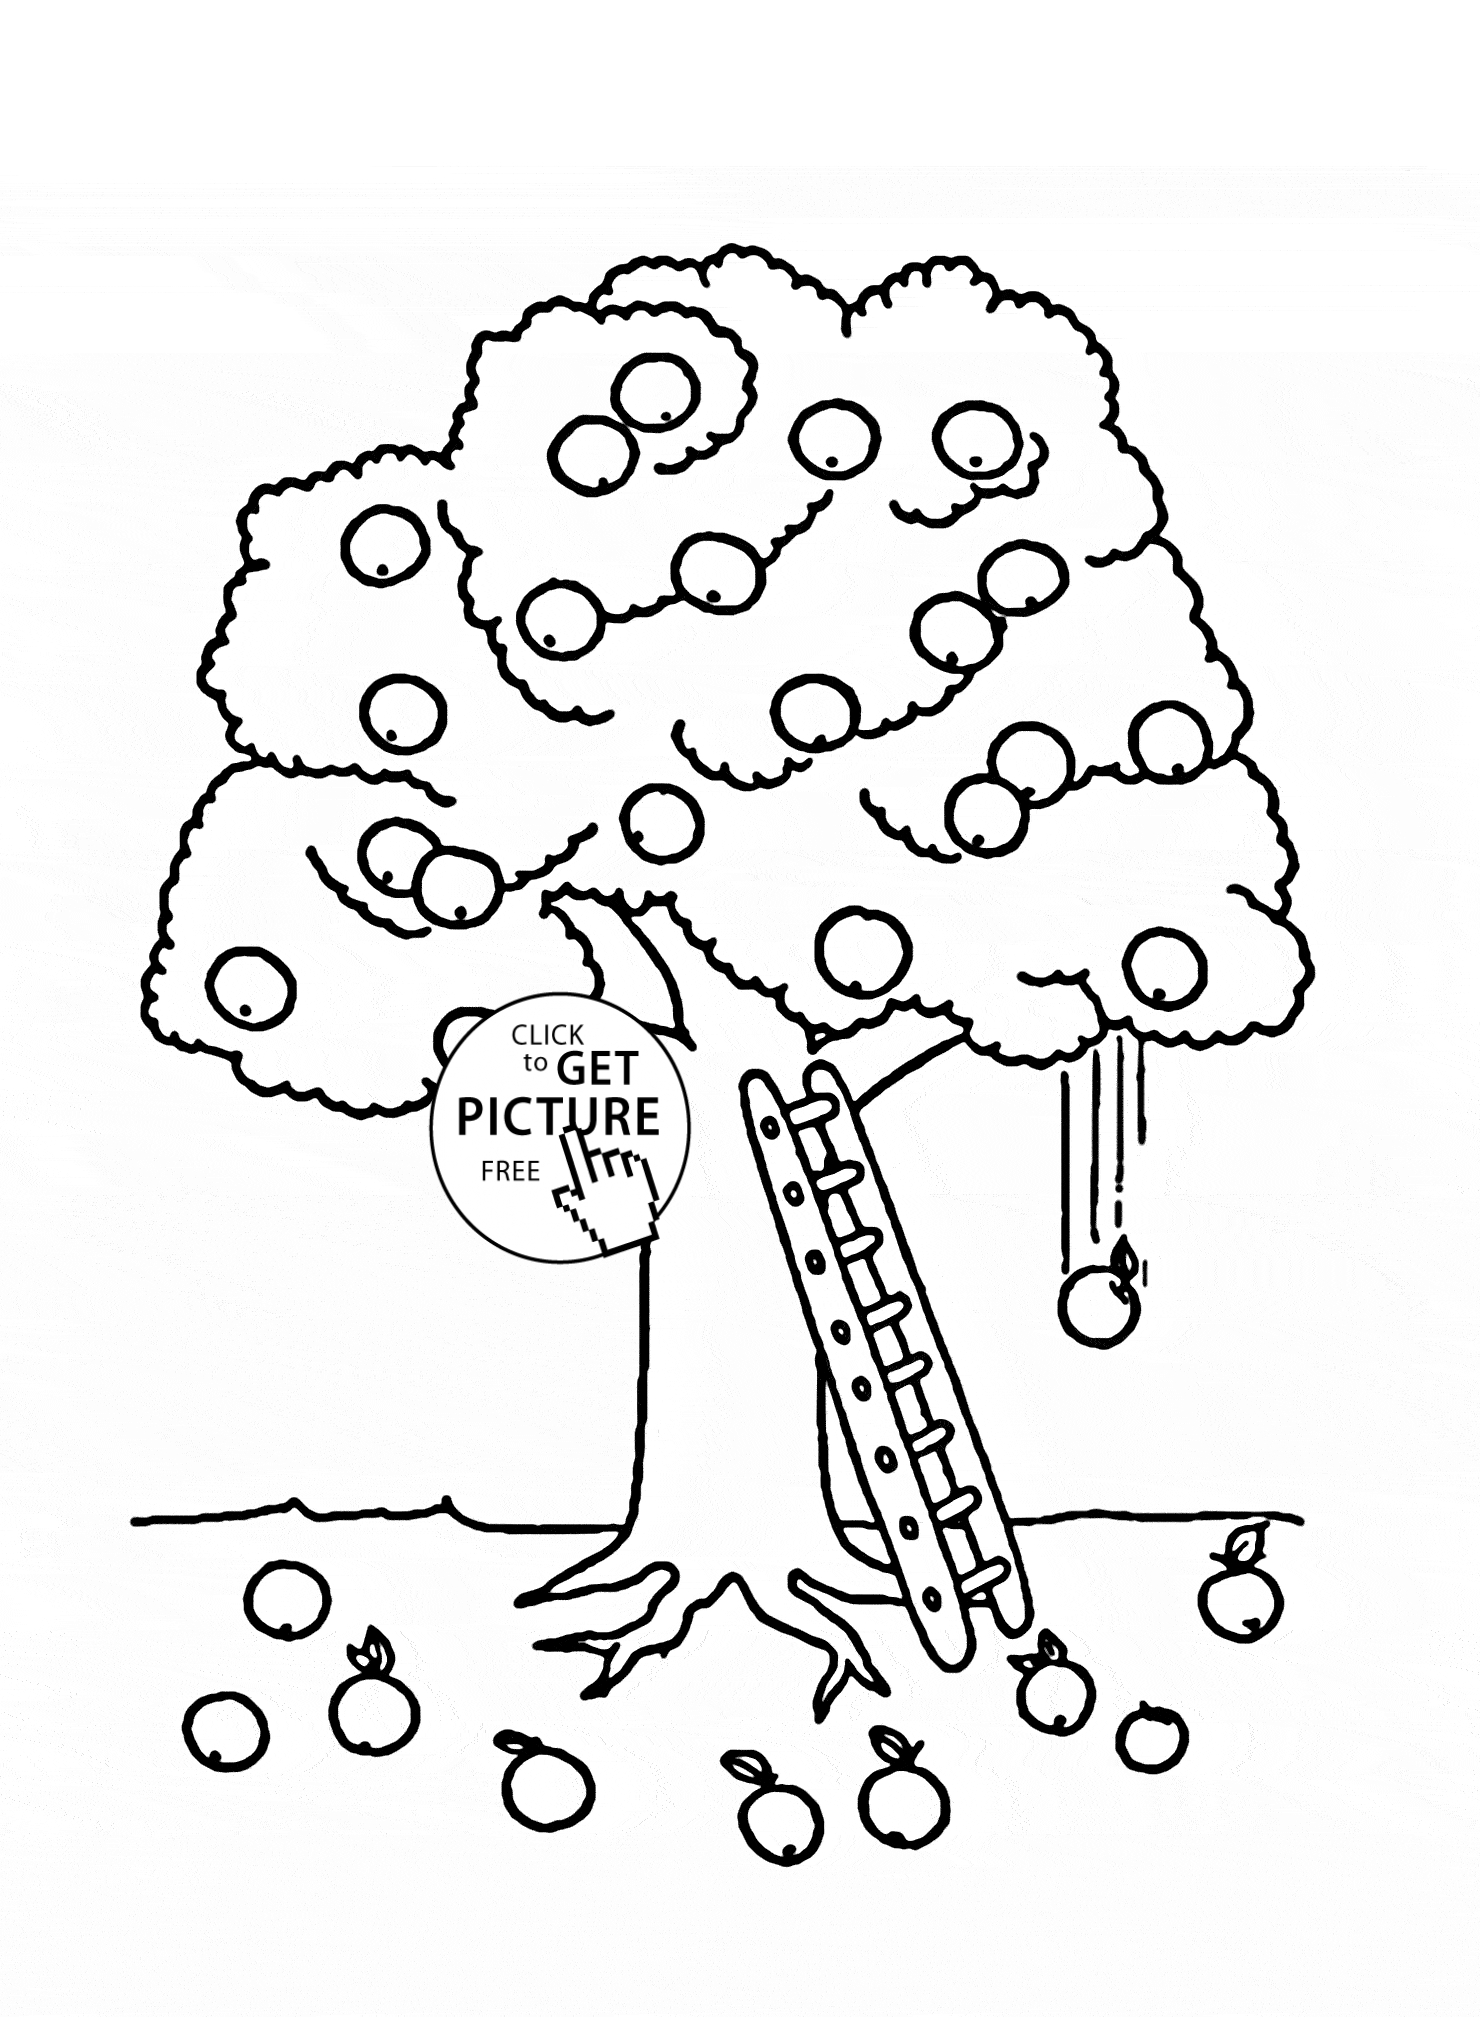 apple tree coloring page - coloring page for kids apple tree